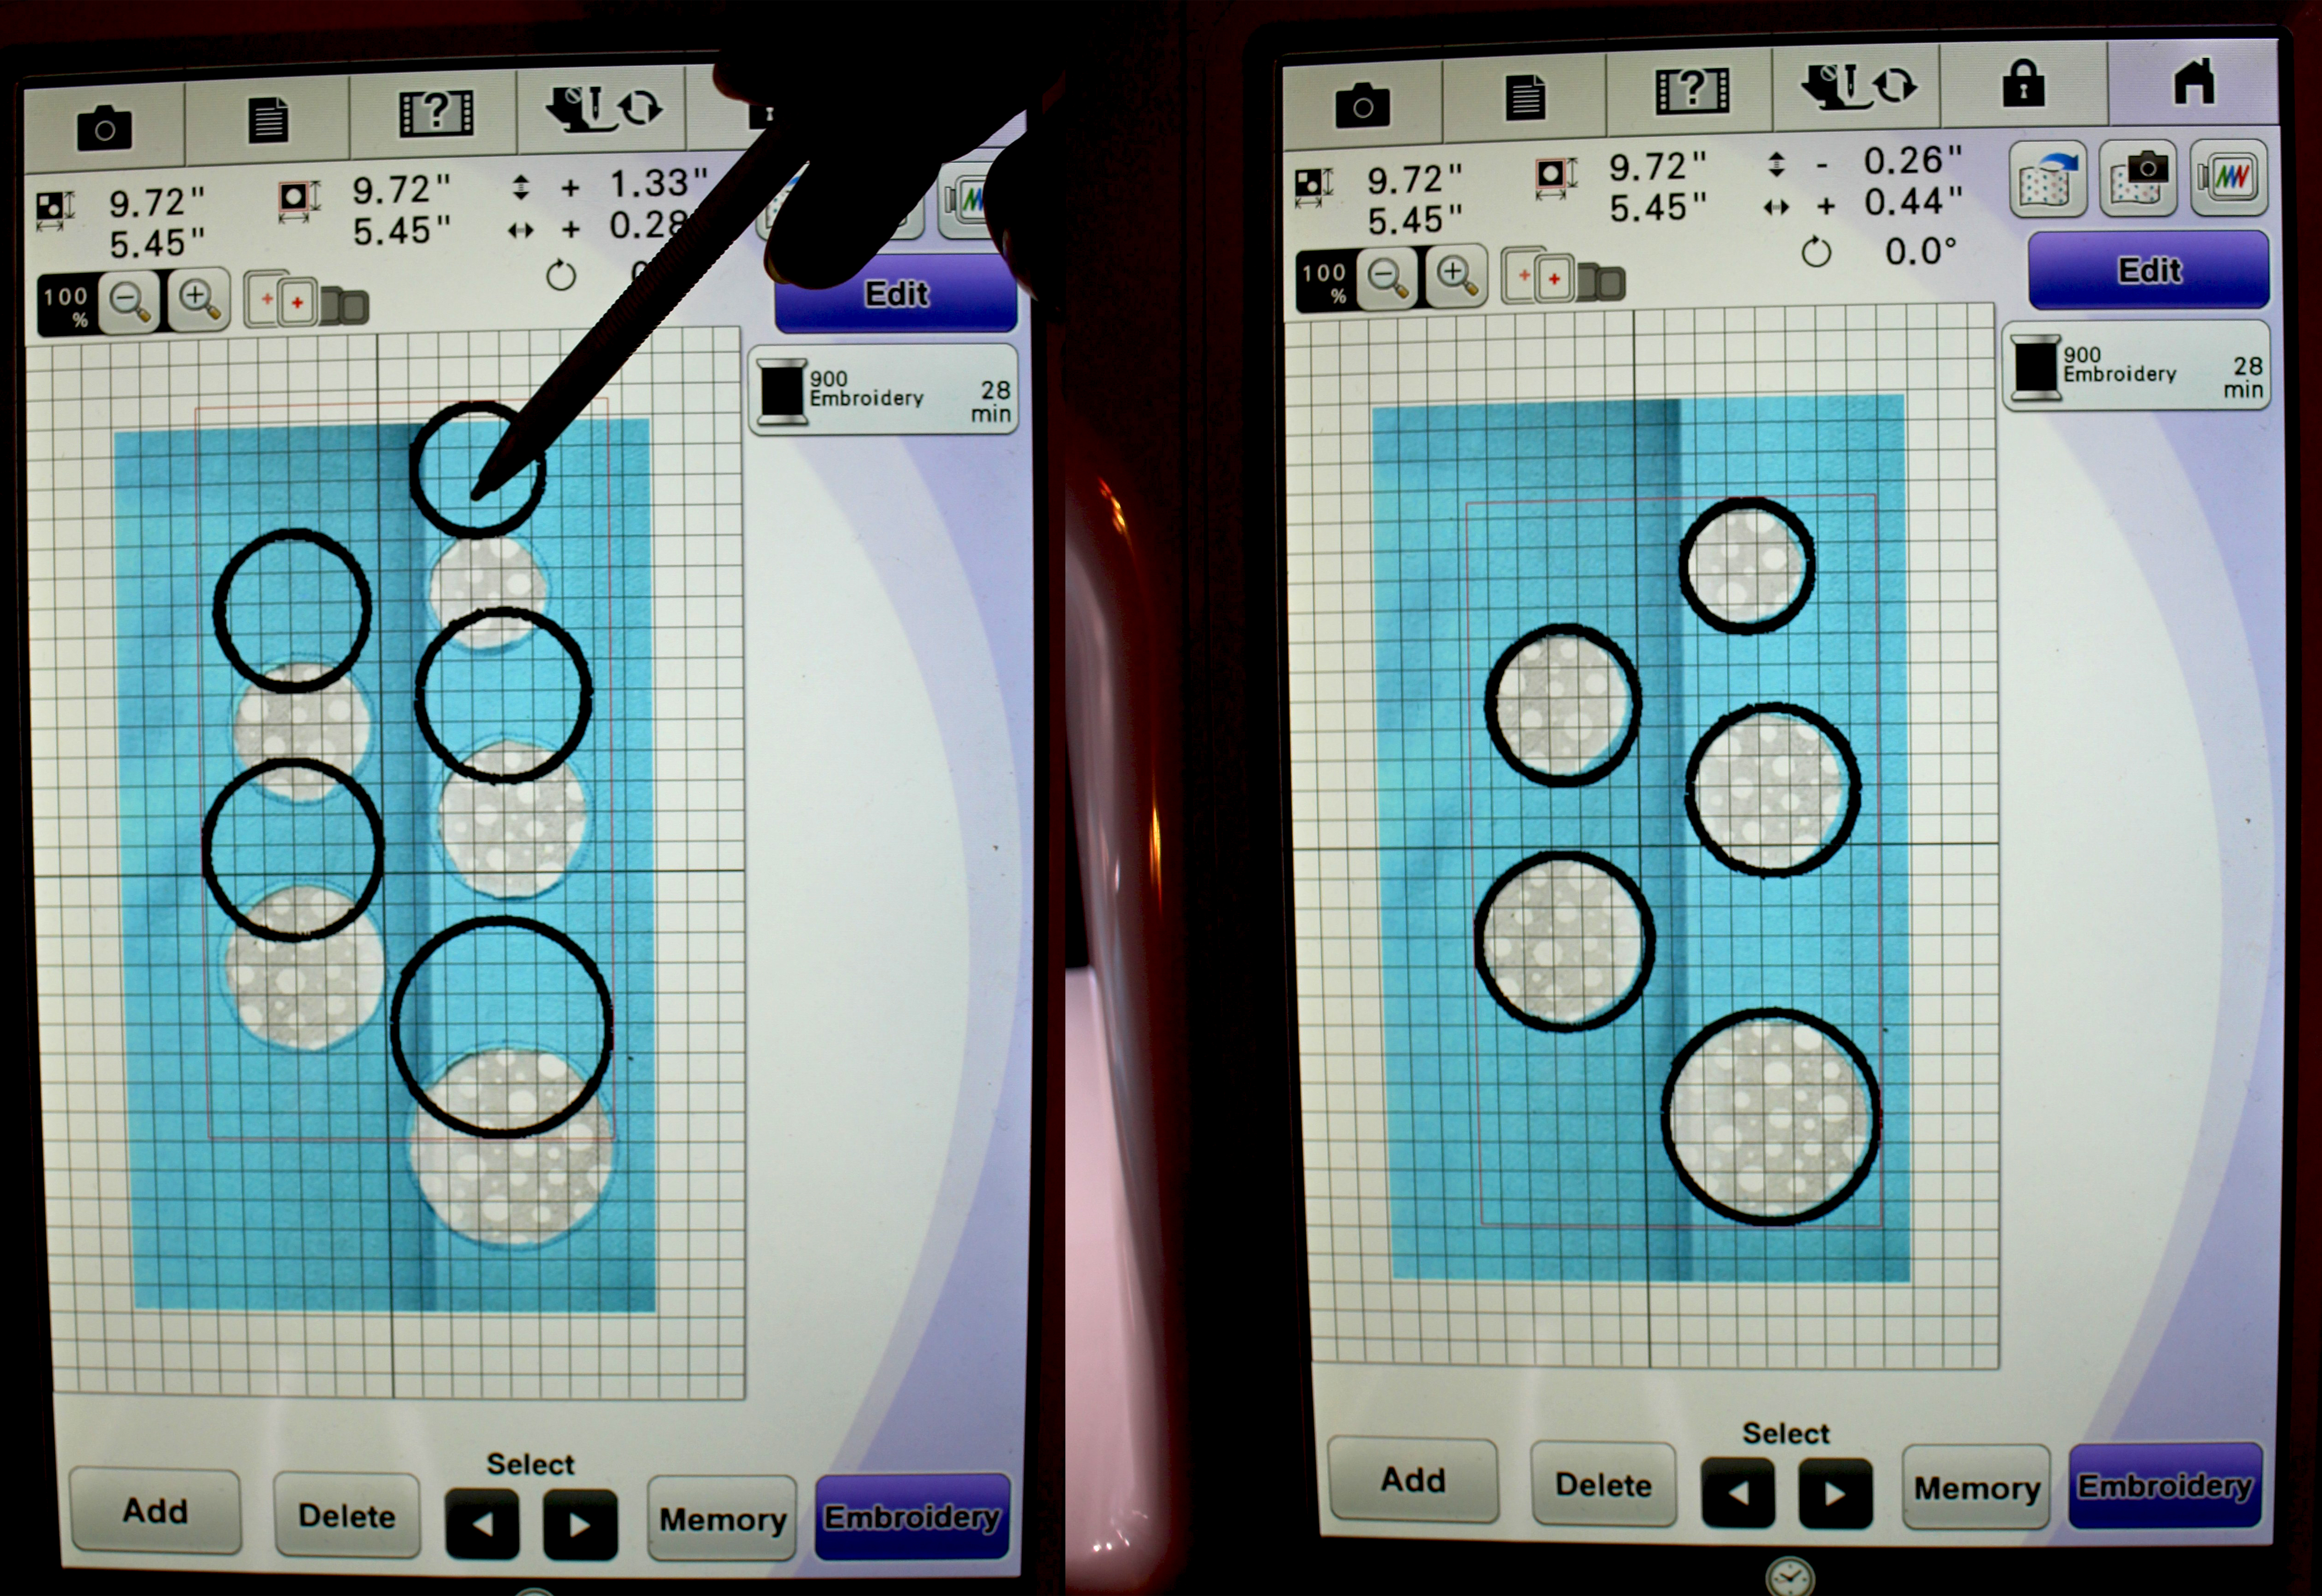 Move the design around to cover the previous circles.